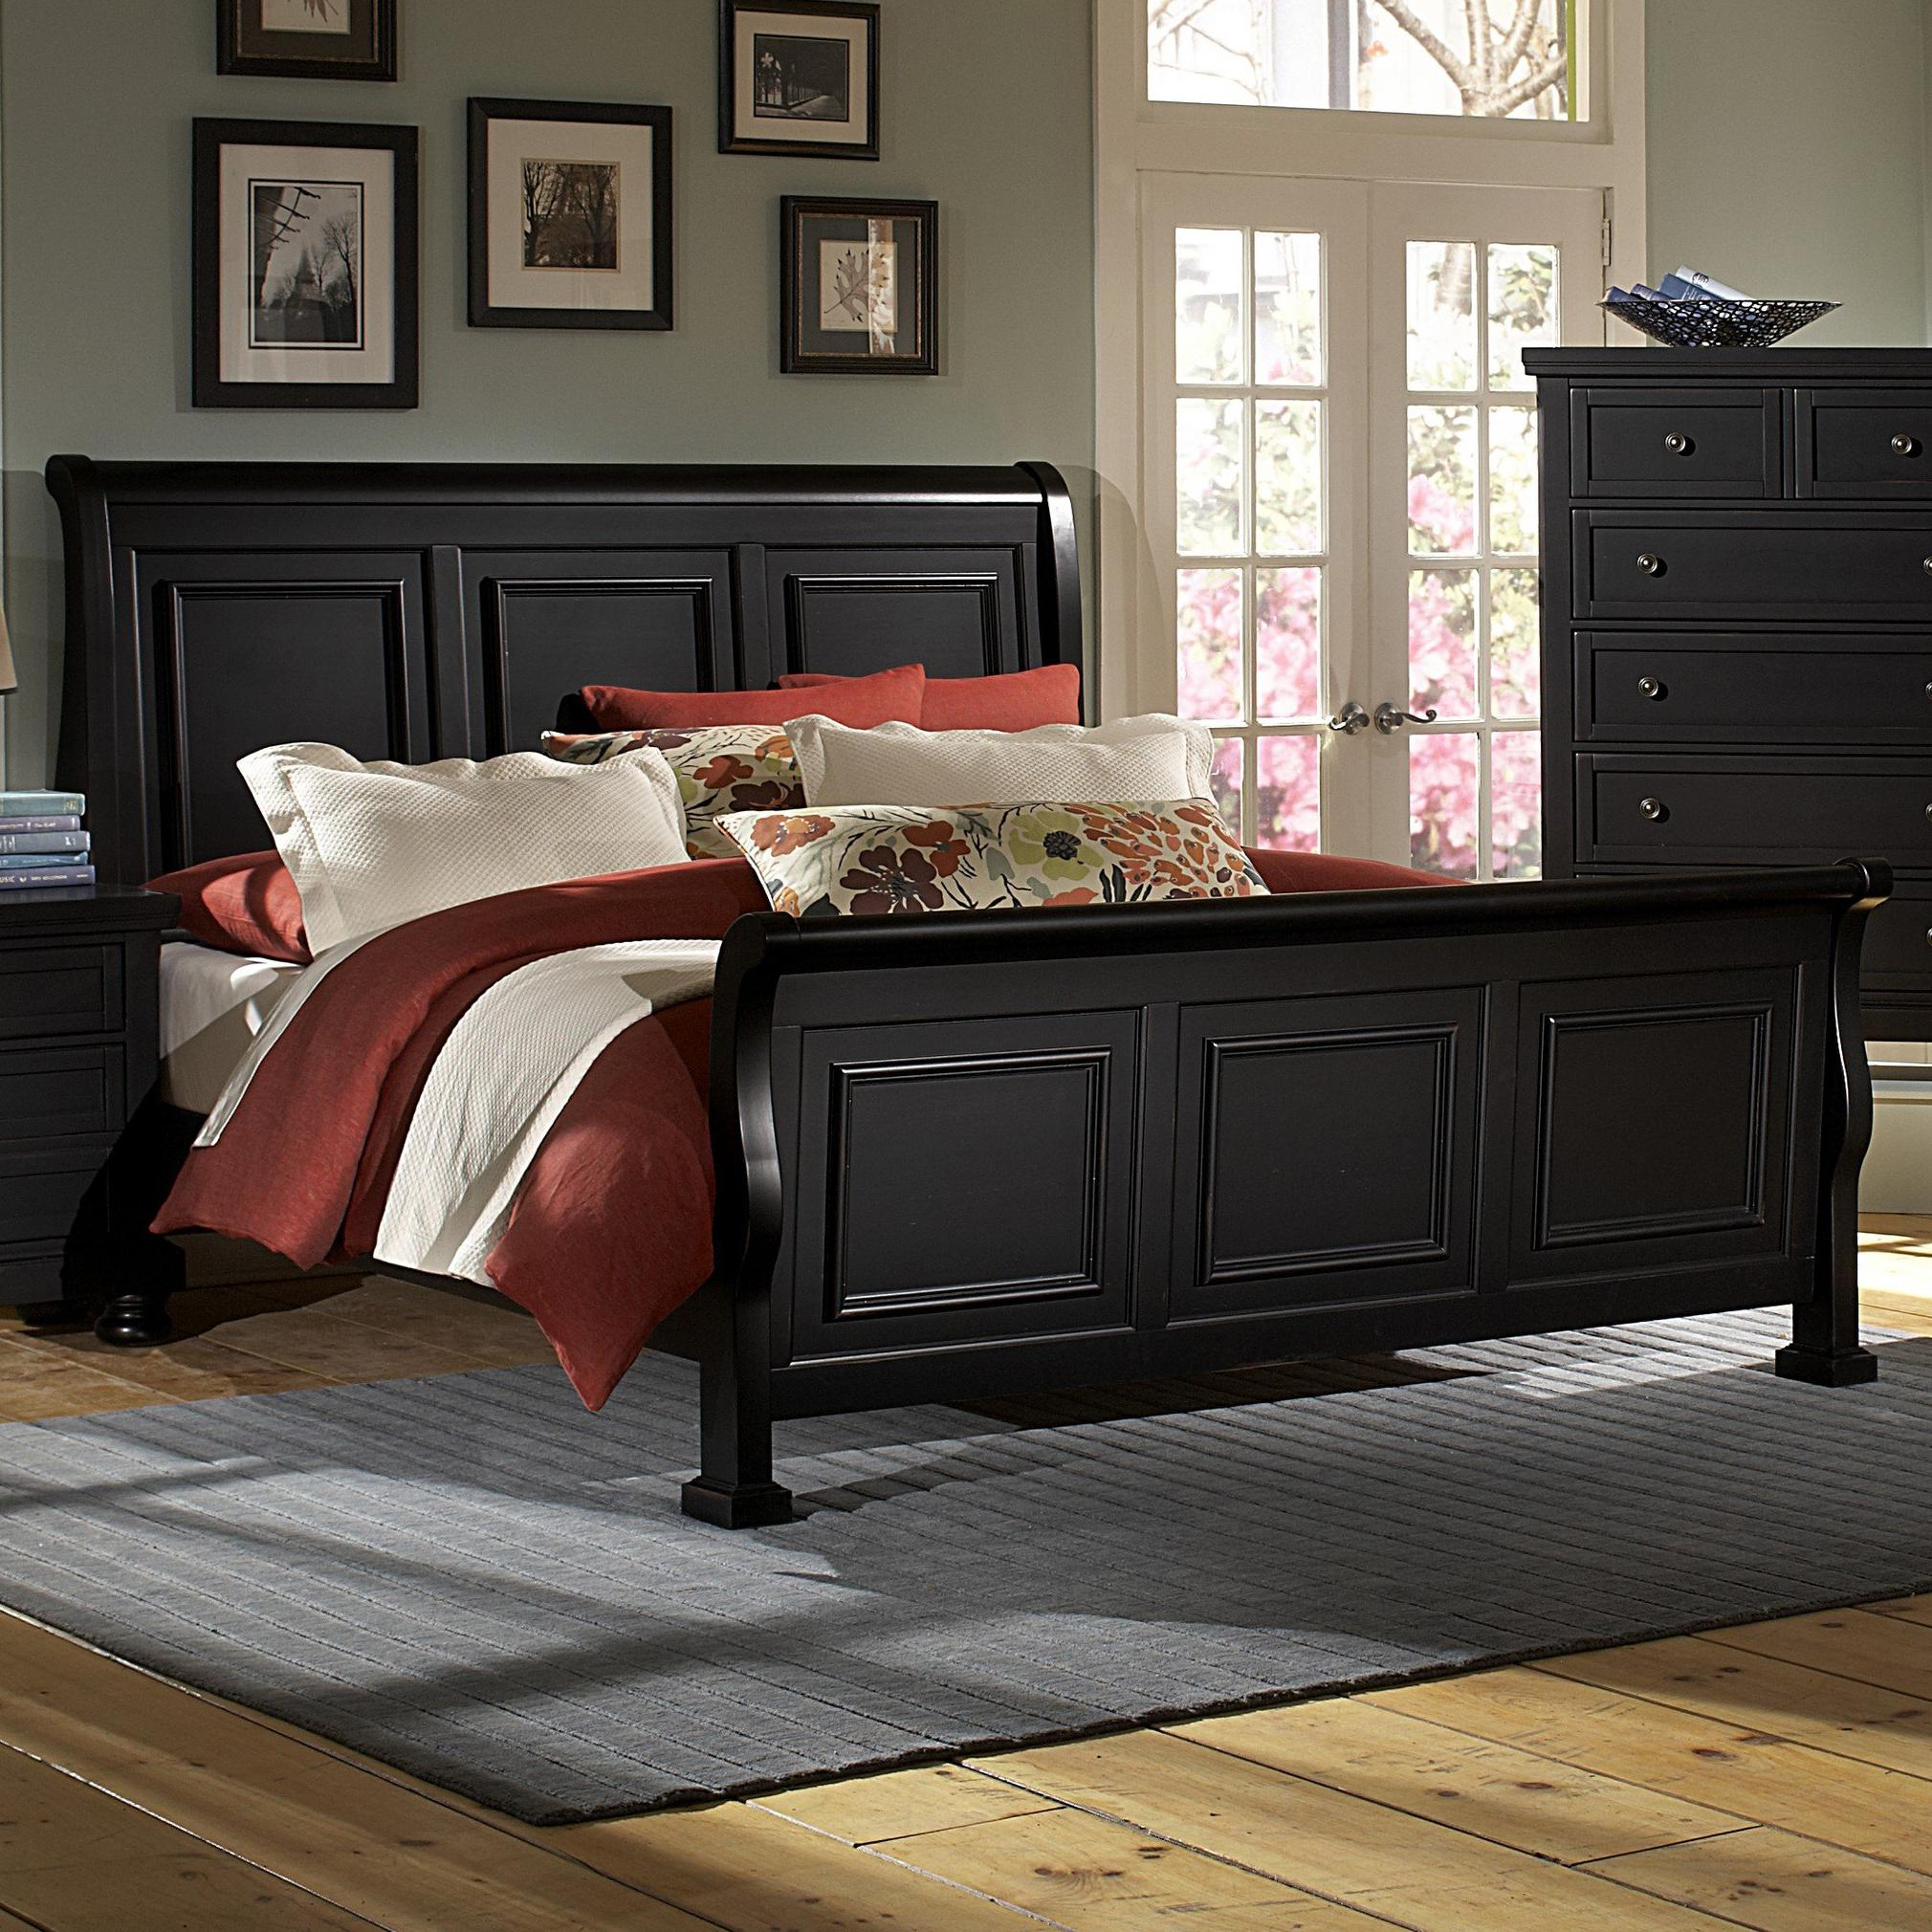 Vaughan Bassett Reflections Queen Sleigh Bed - Item Number: 534-553+355+722